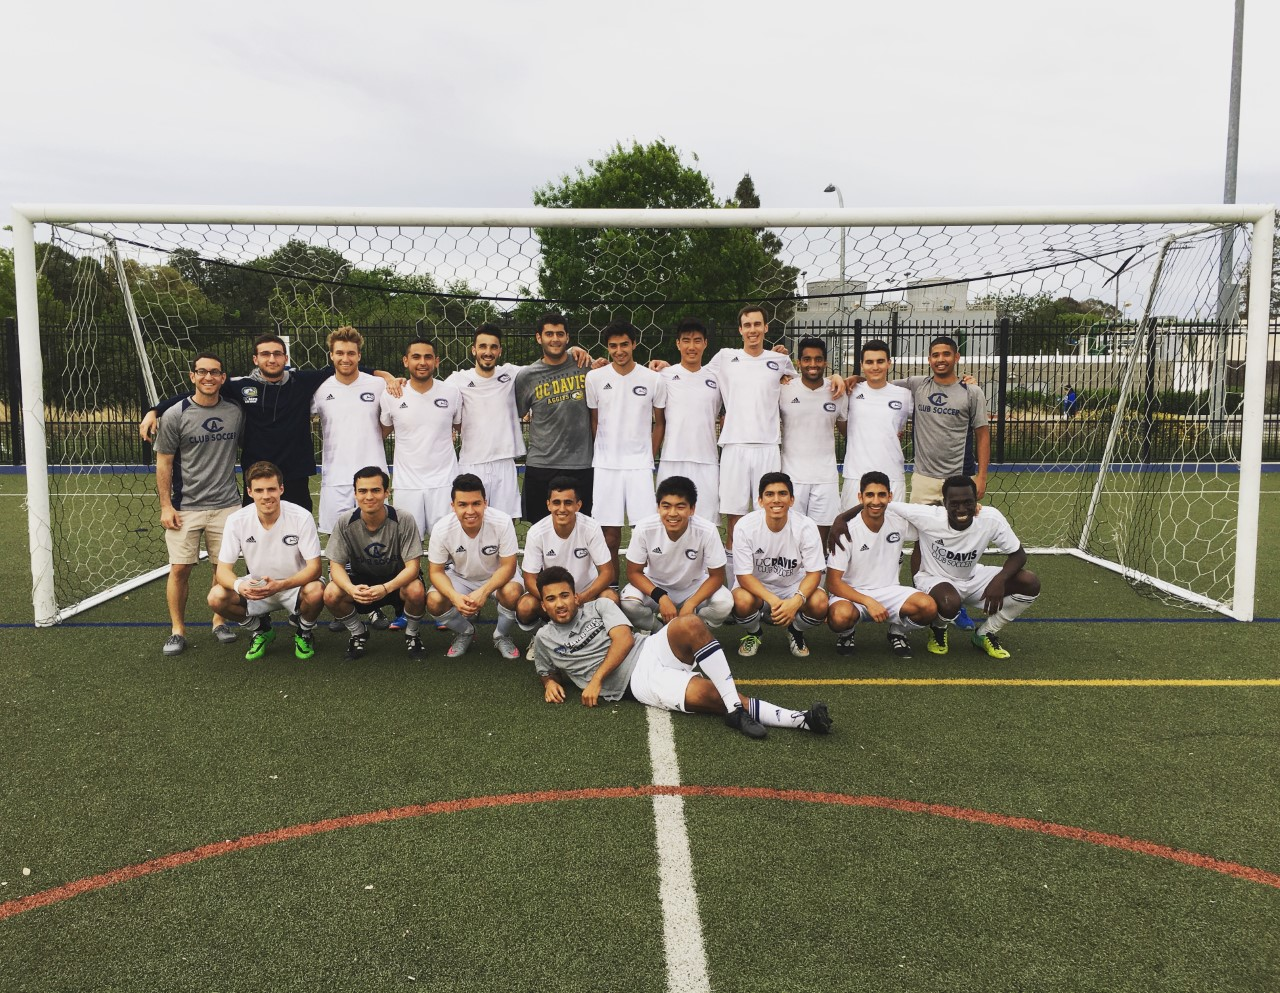 mens soccer team photo